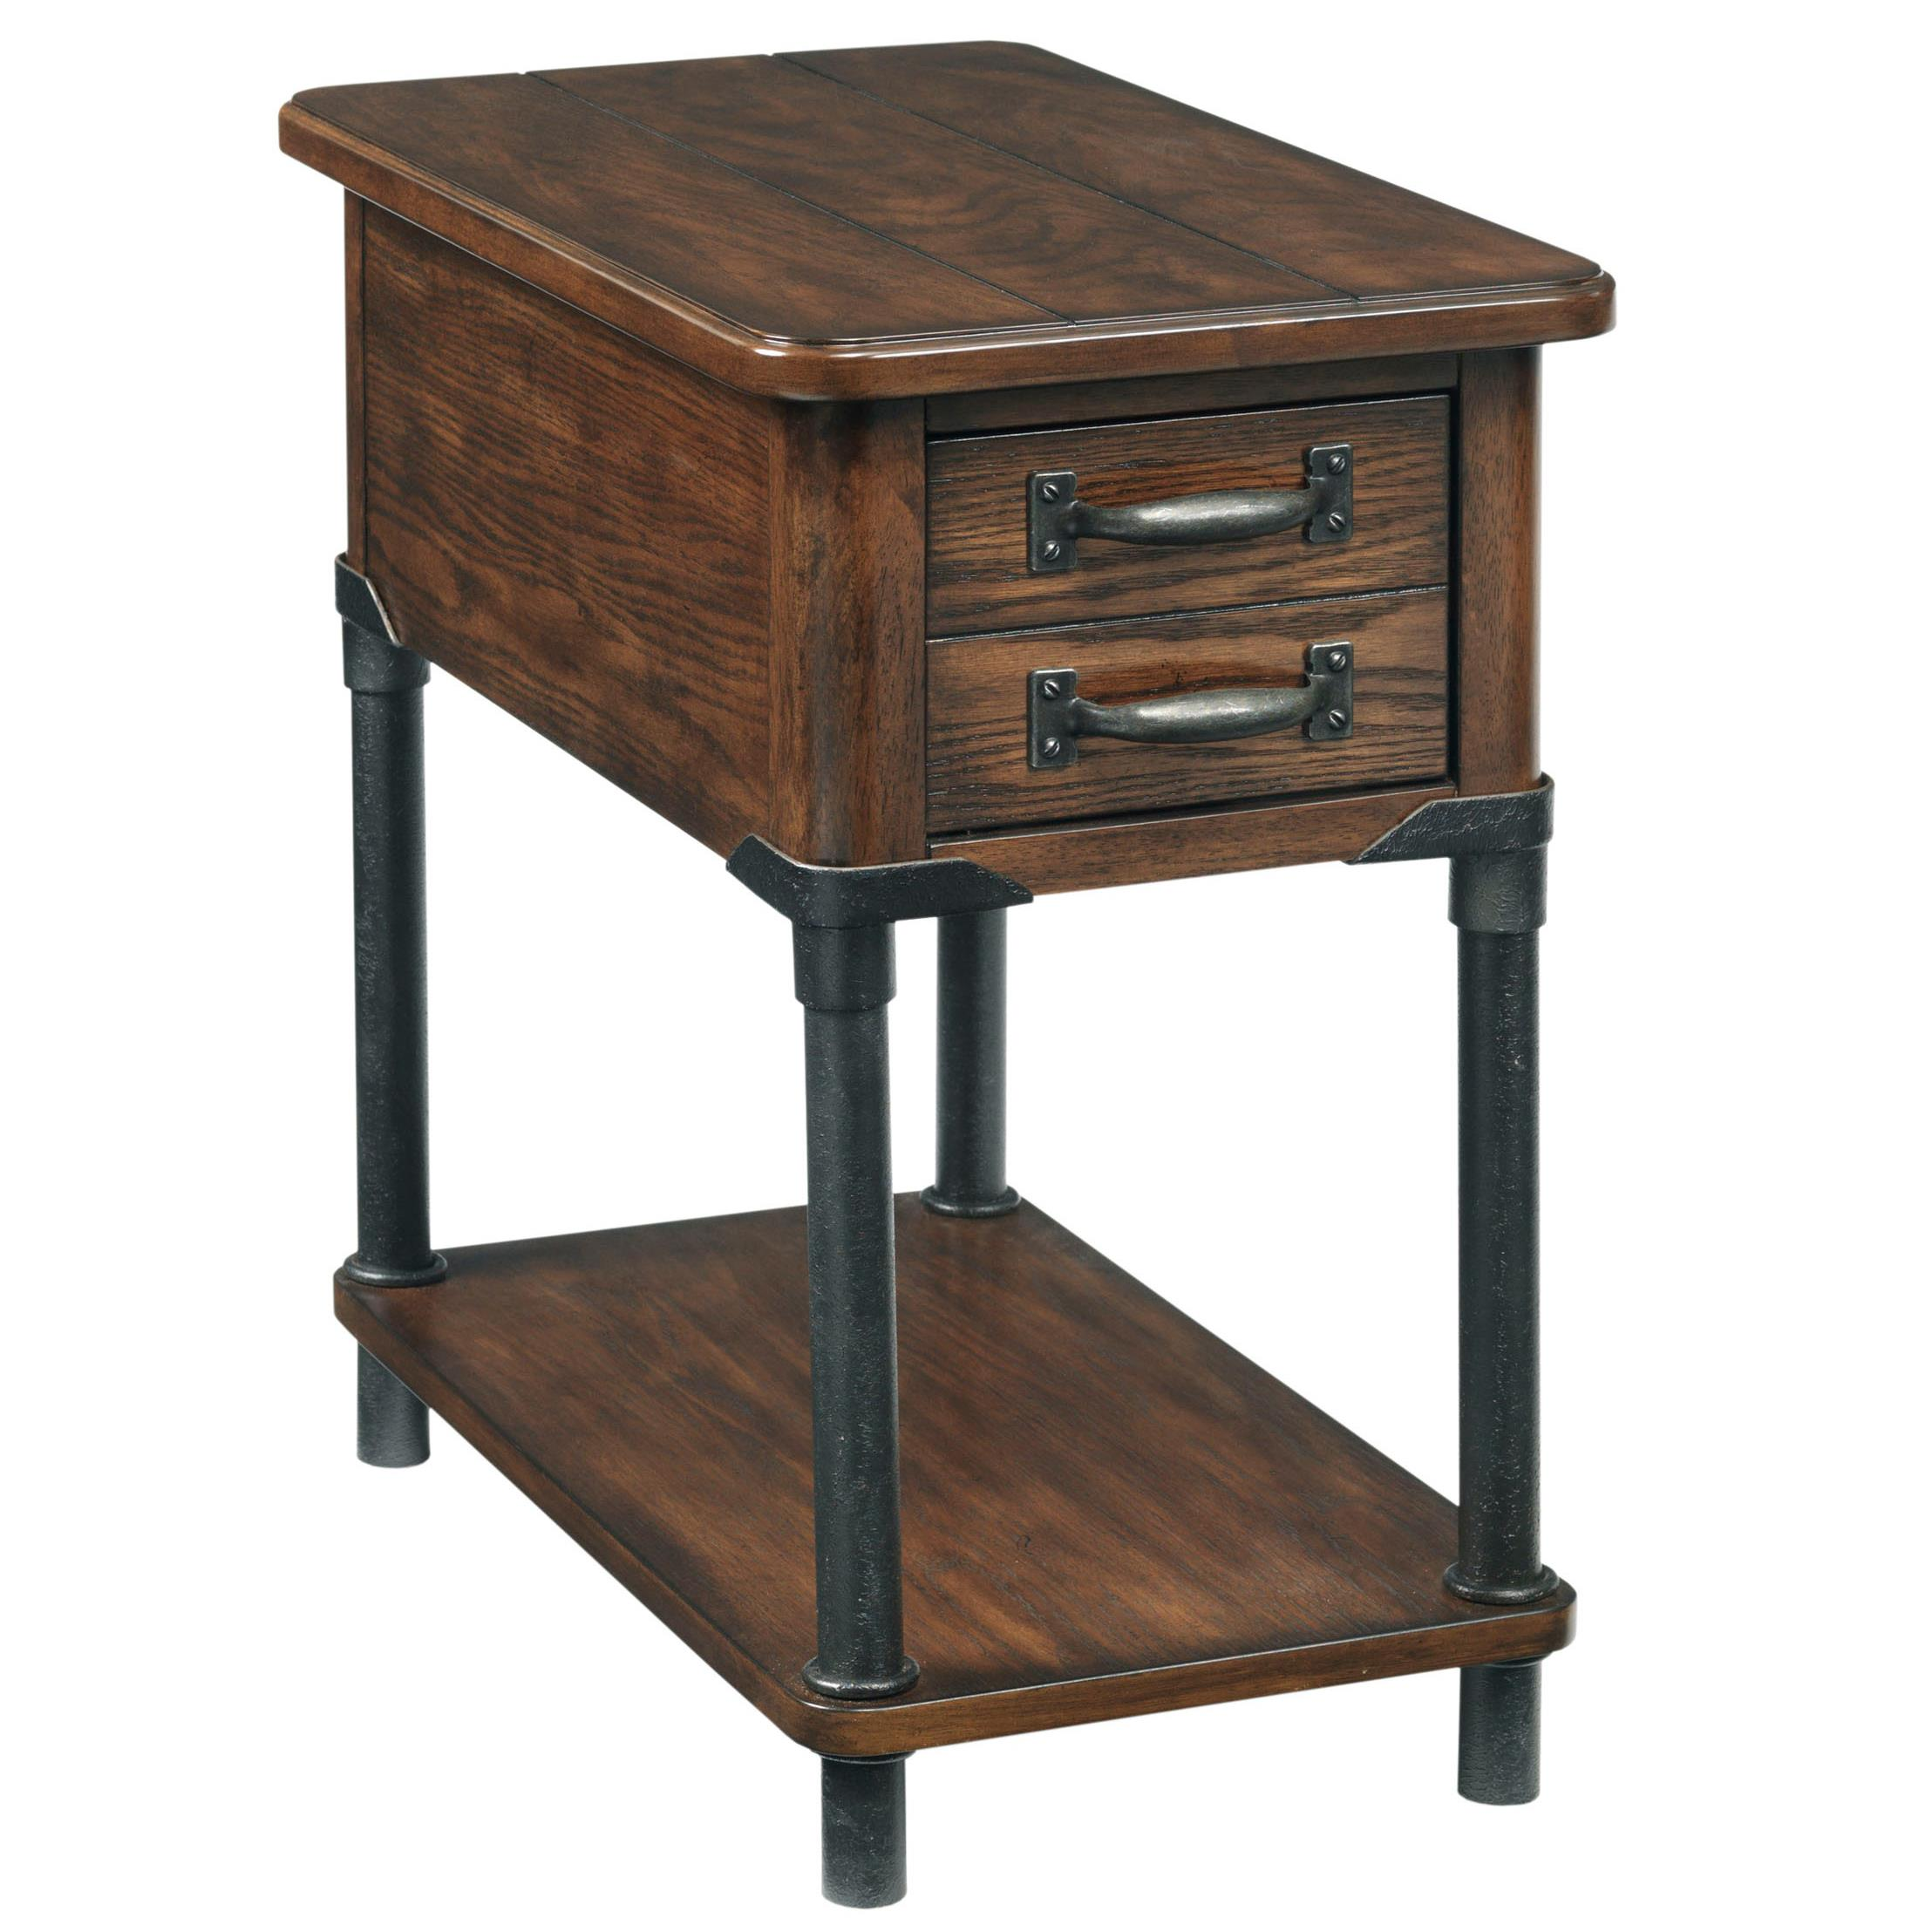 Broyhill Furniture Saluda Accent Table - Item Number: 3353-007